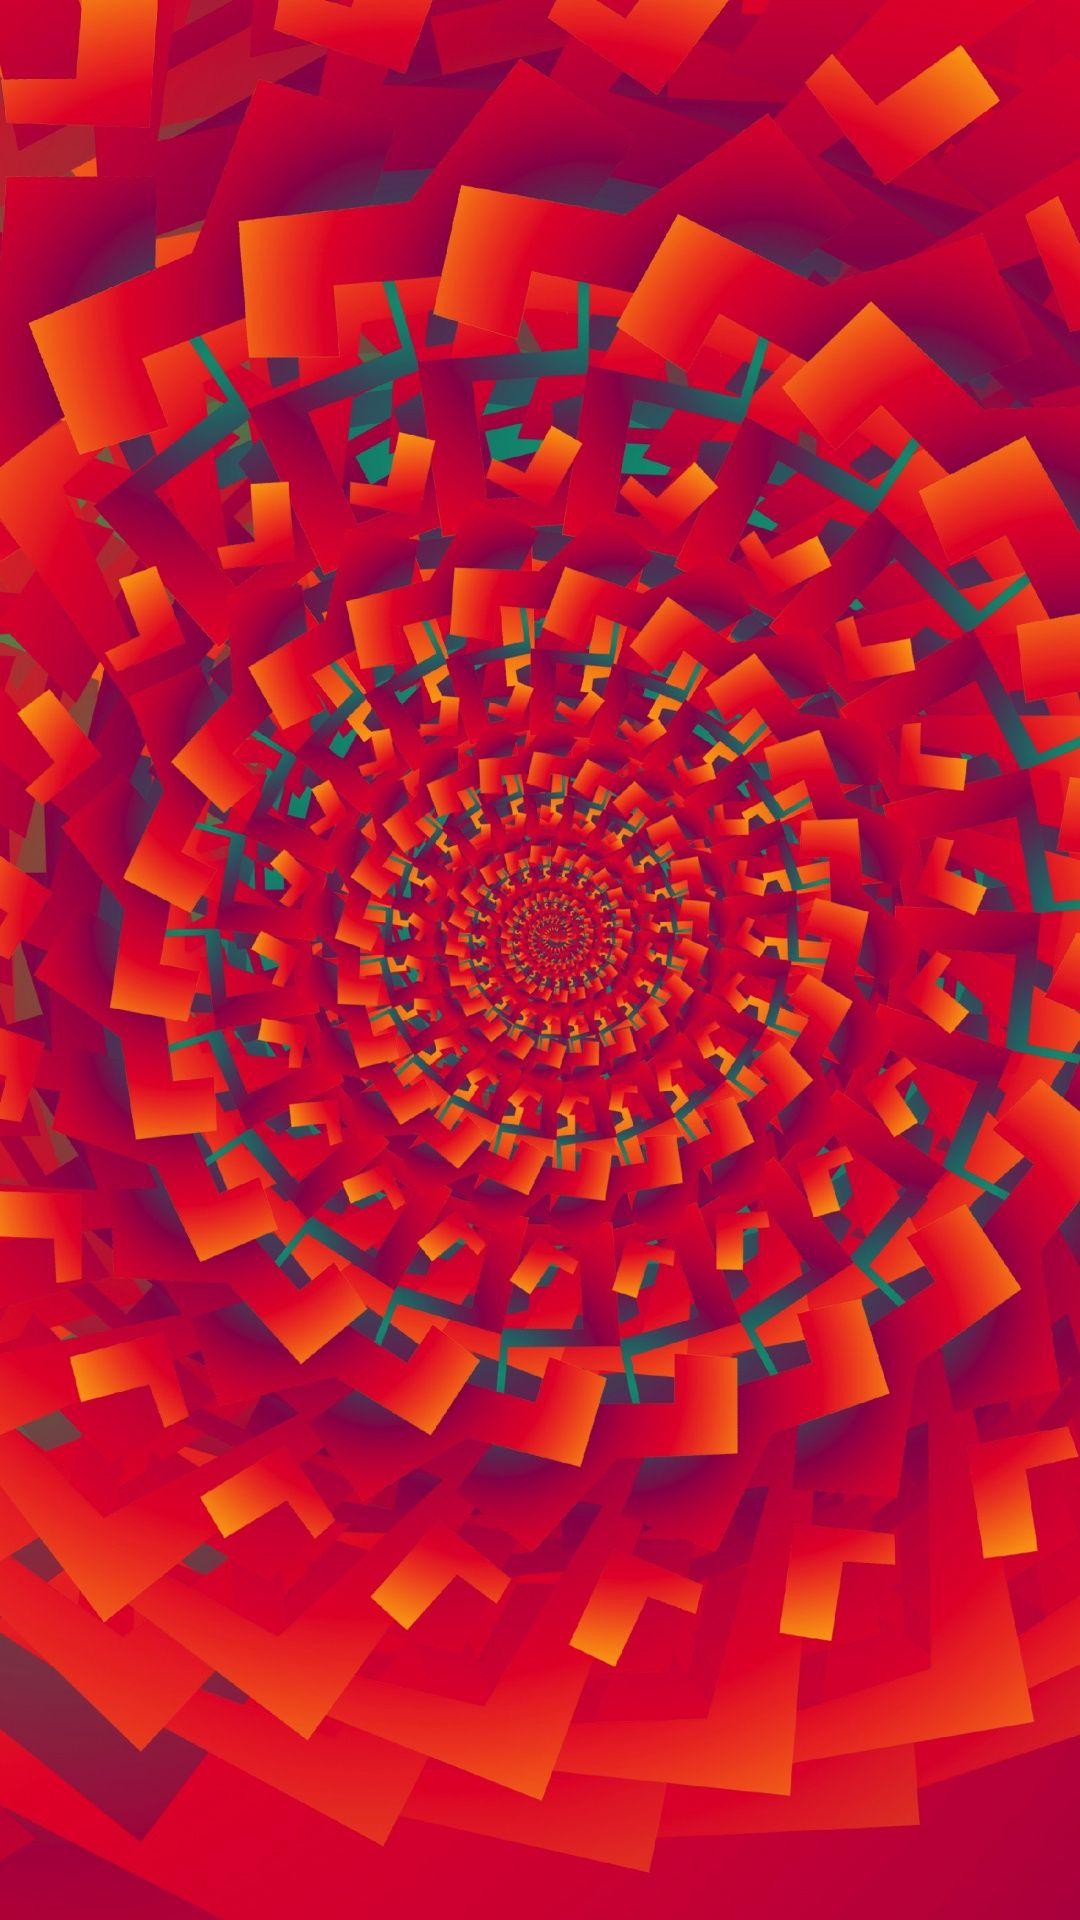 Download 1080x1920 Wallpaper Fractals  Spiral  Orange